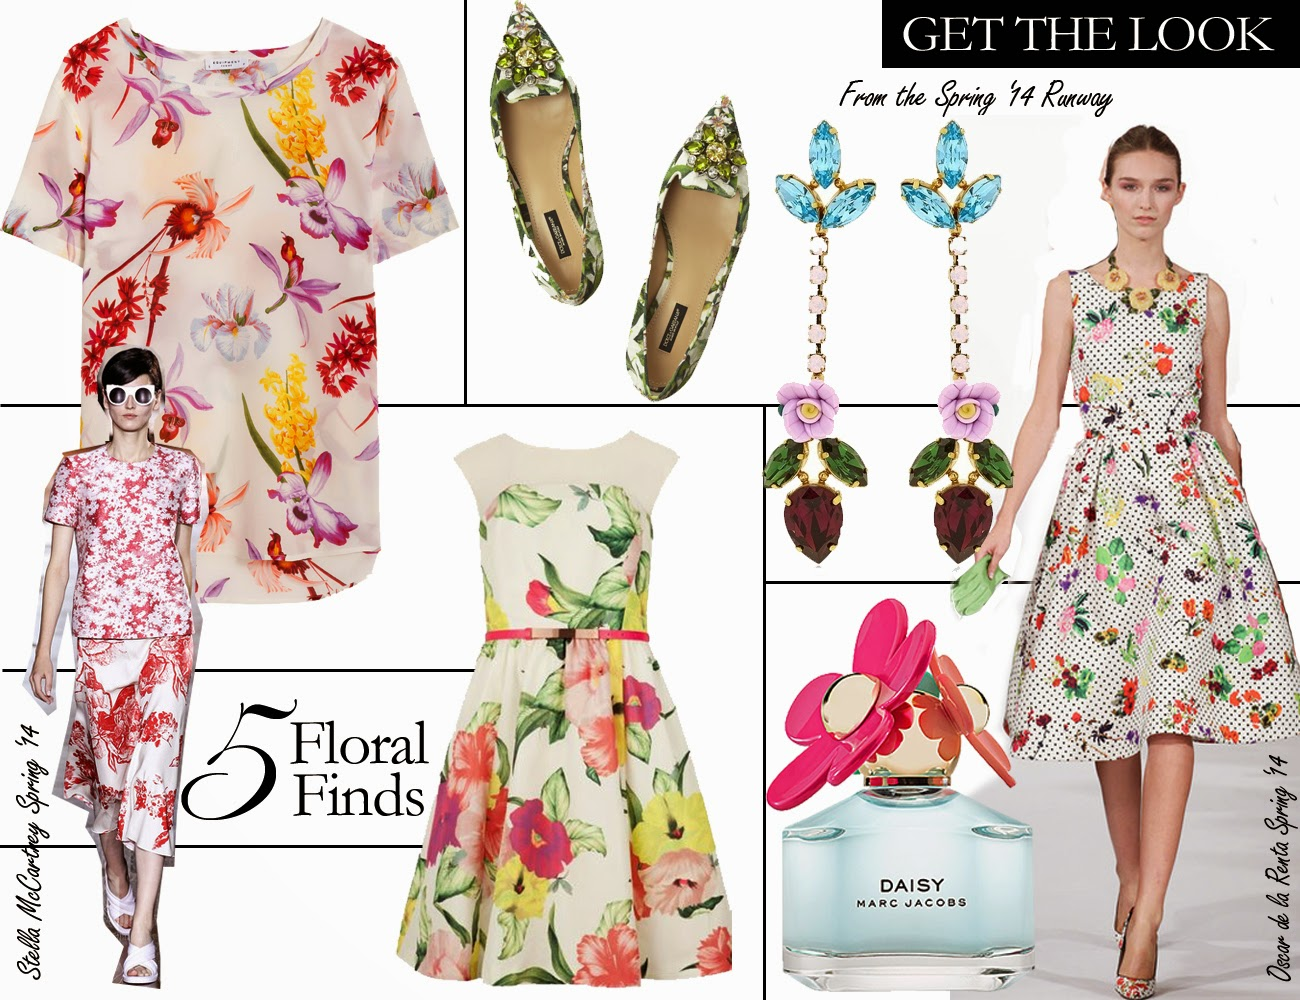 Get the Look: 5 Floral Finds